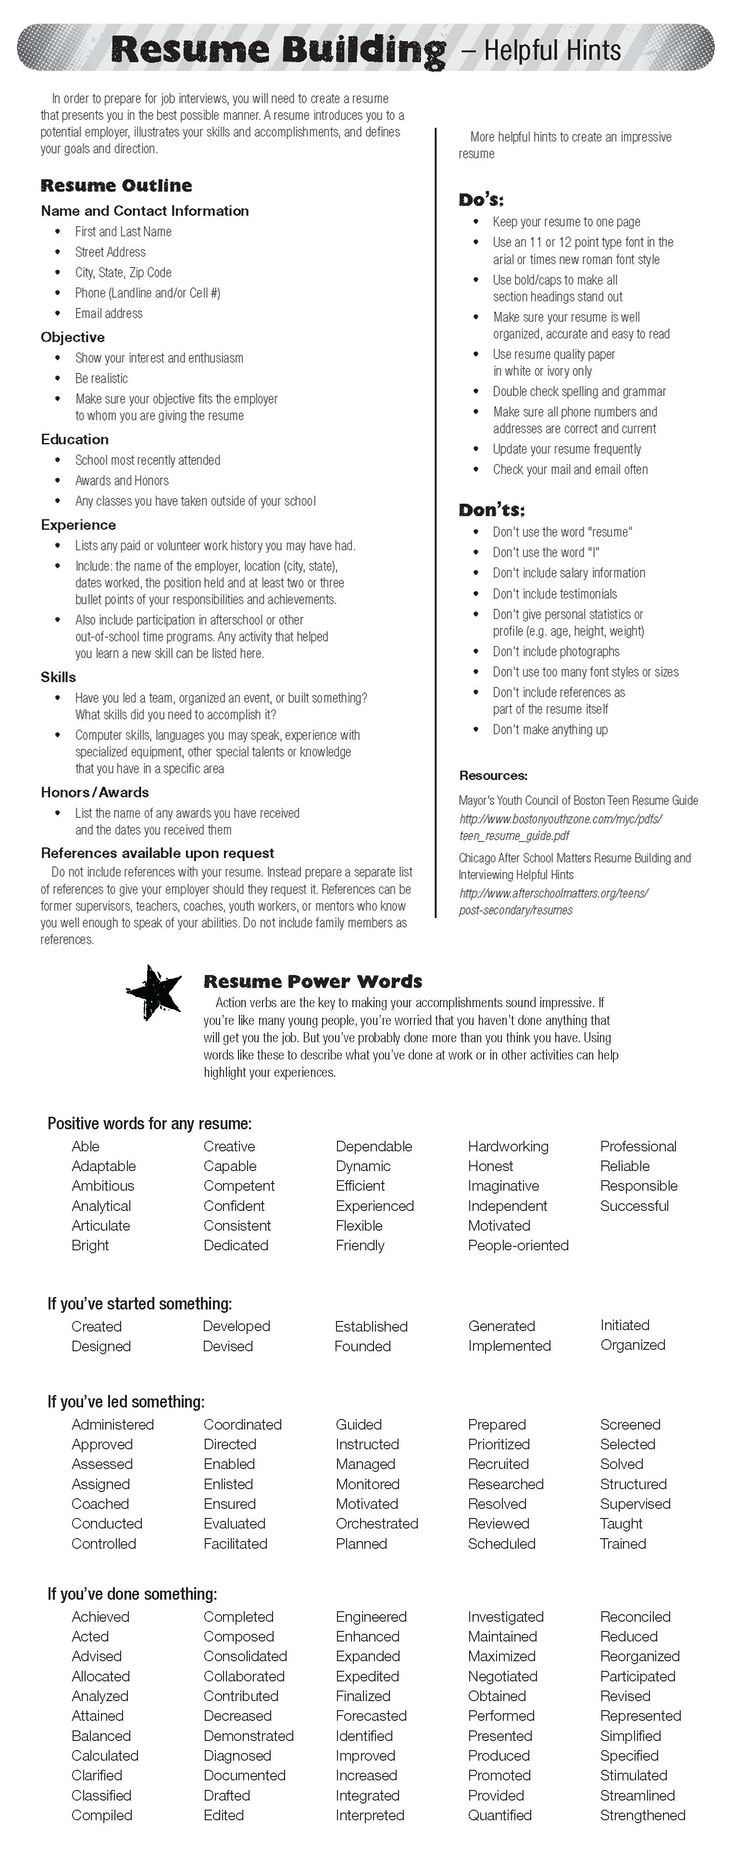 Opposenewapstandardsus  Fascinating  Ideas About Resume On Pinterest  Cv Format Resume Cv And  With Fair  Ideas About Resume On Pinterest  Cv Format Resume Cv And Resume Templates With Delightful Skills For Resume List Also Resume Layout Samples In Addition Resume For Office Assistant And Resume Gpa As Well As Business Manager Resume Additionally Resume Without Experience From Pinterestcom With Opposenewapstandardsus  Fair  Ideas About Resume On Pinterest  Cv Format Resume Cv And  With Delightful  Ideas About Resume On Pinterest  Cv Format Resume Cv And Resume Templates And Fascinating Skills For Resume List Also Resume Layout Samples In Addition Resume For Office Assistant From Pinterestcom